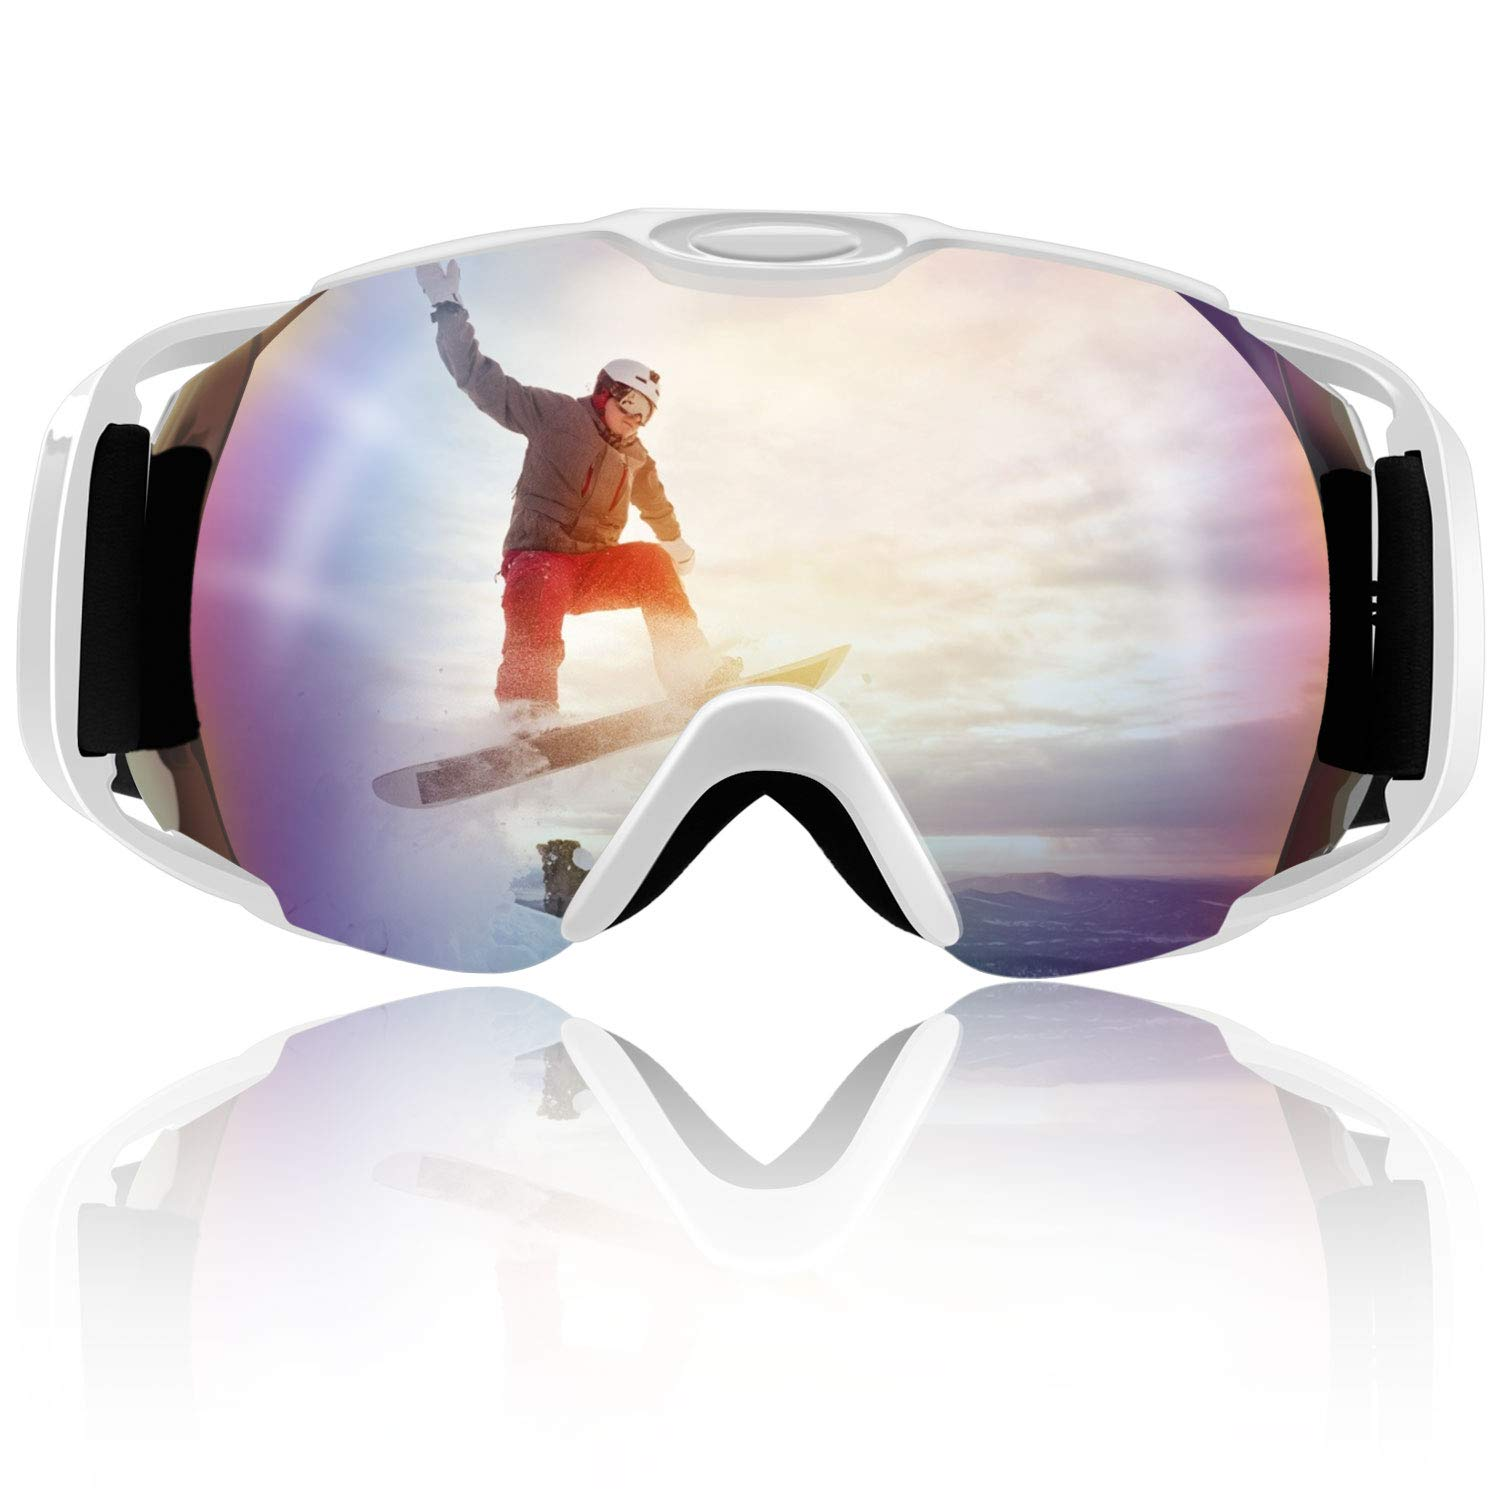 Venoro Ski Goggles, Snowboard Goggles Protection with Adjustable Strap for Men, Women and Youths